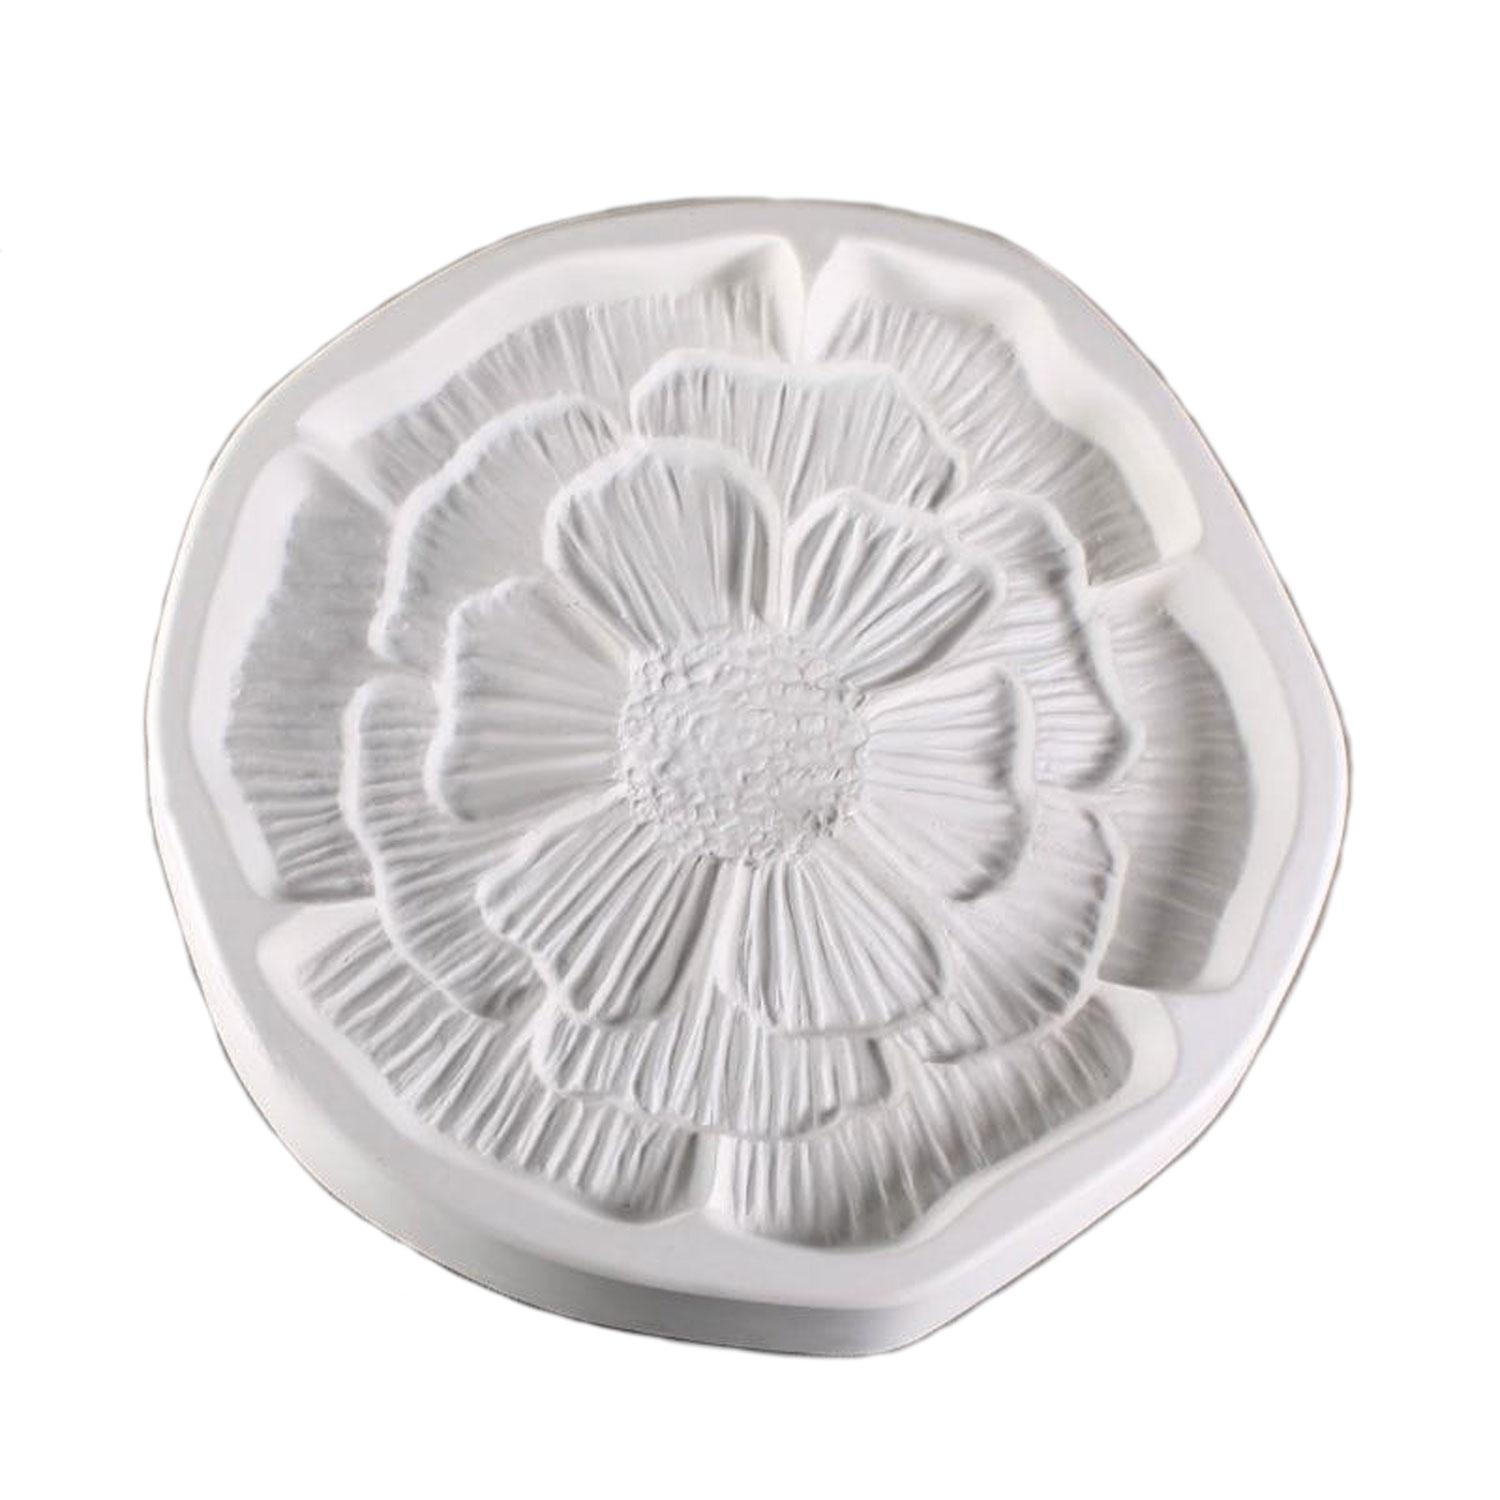 Patty Gray Medium Poppy Casting Mold